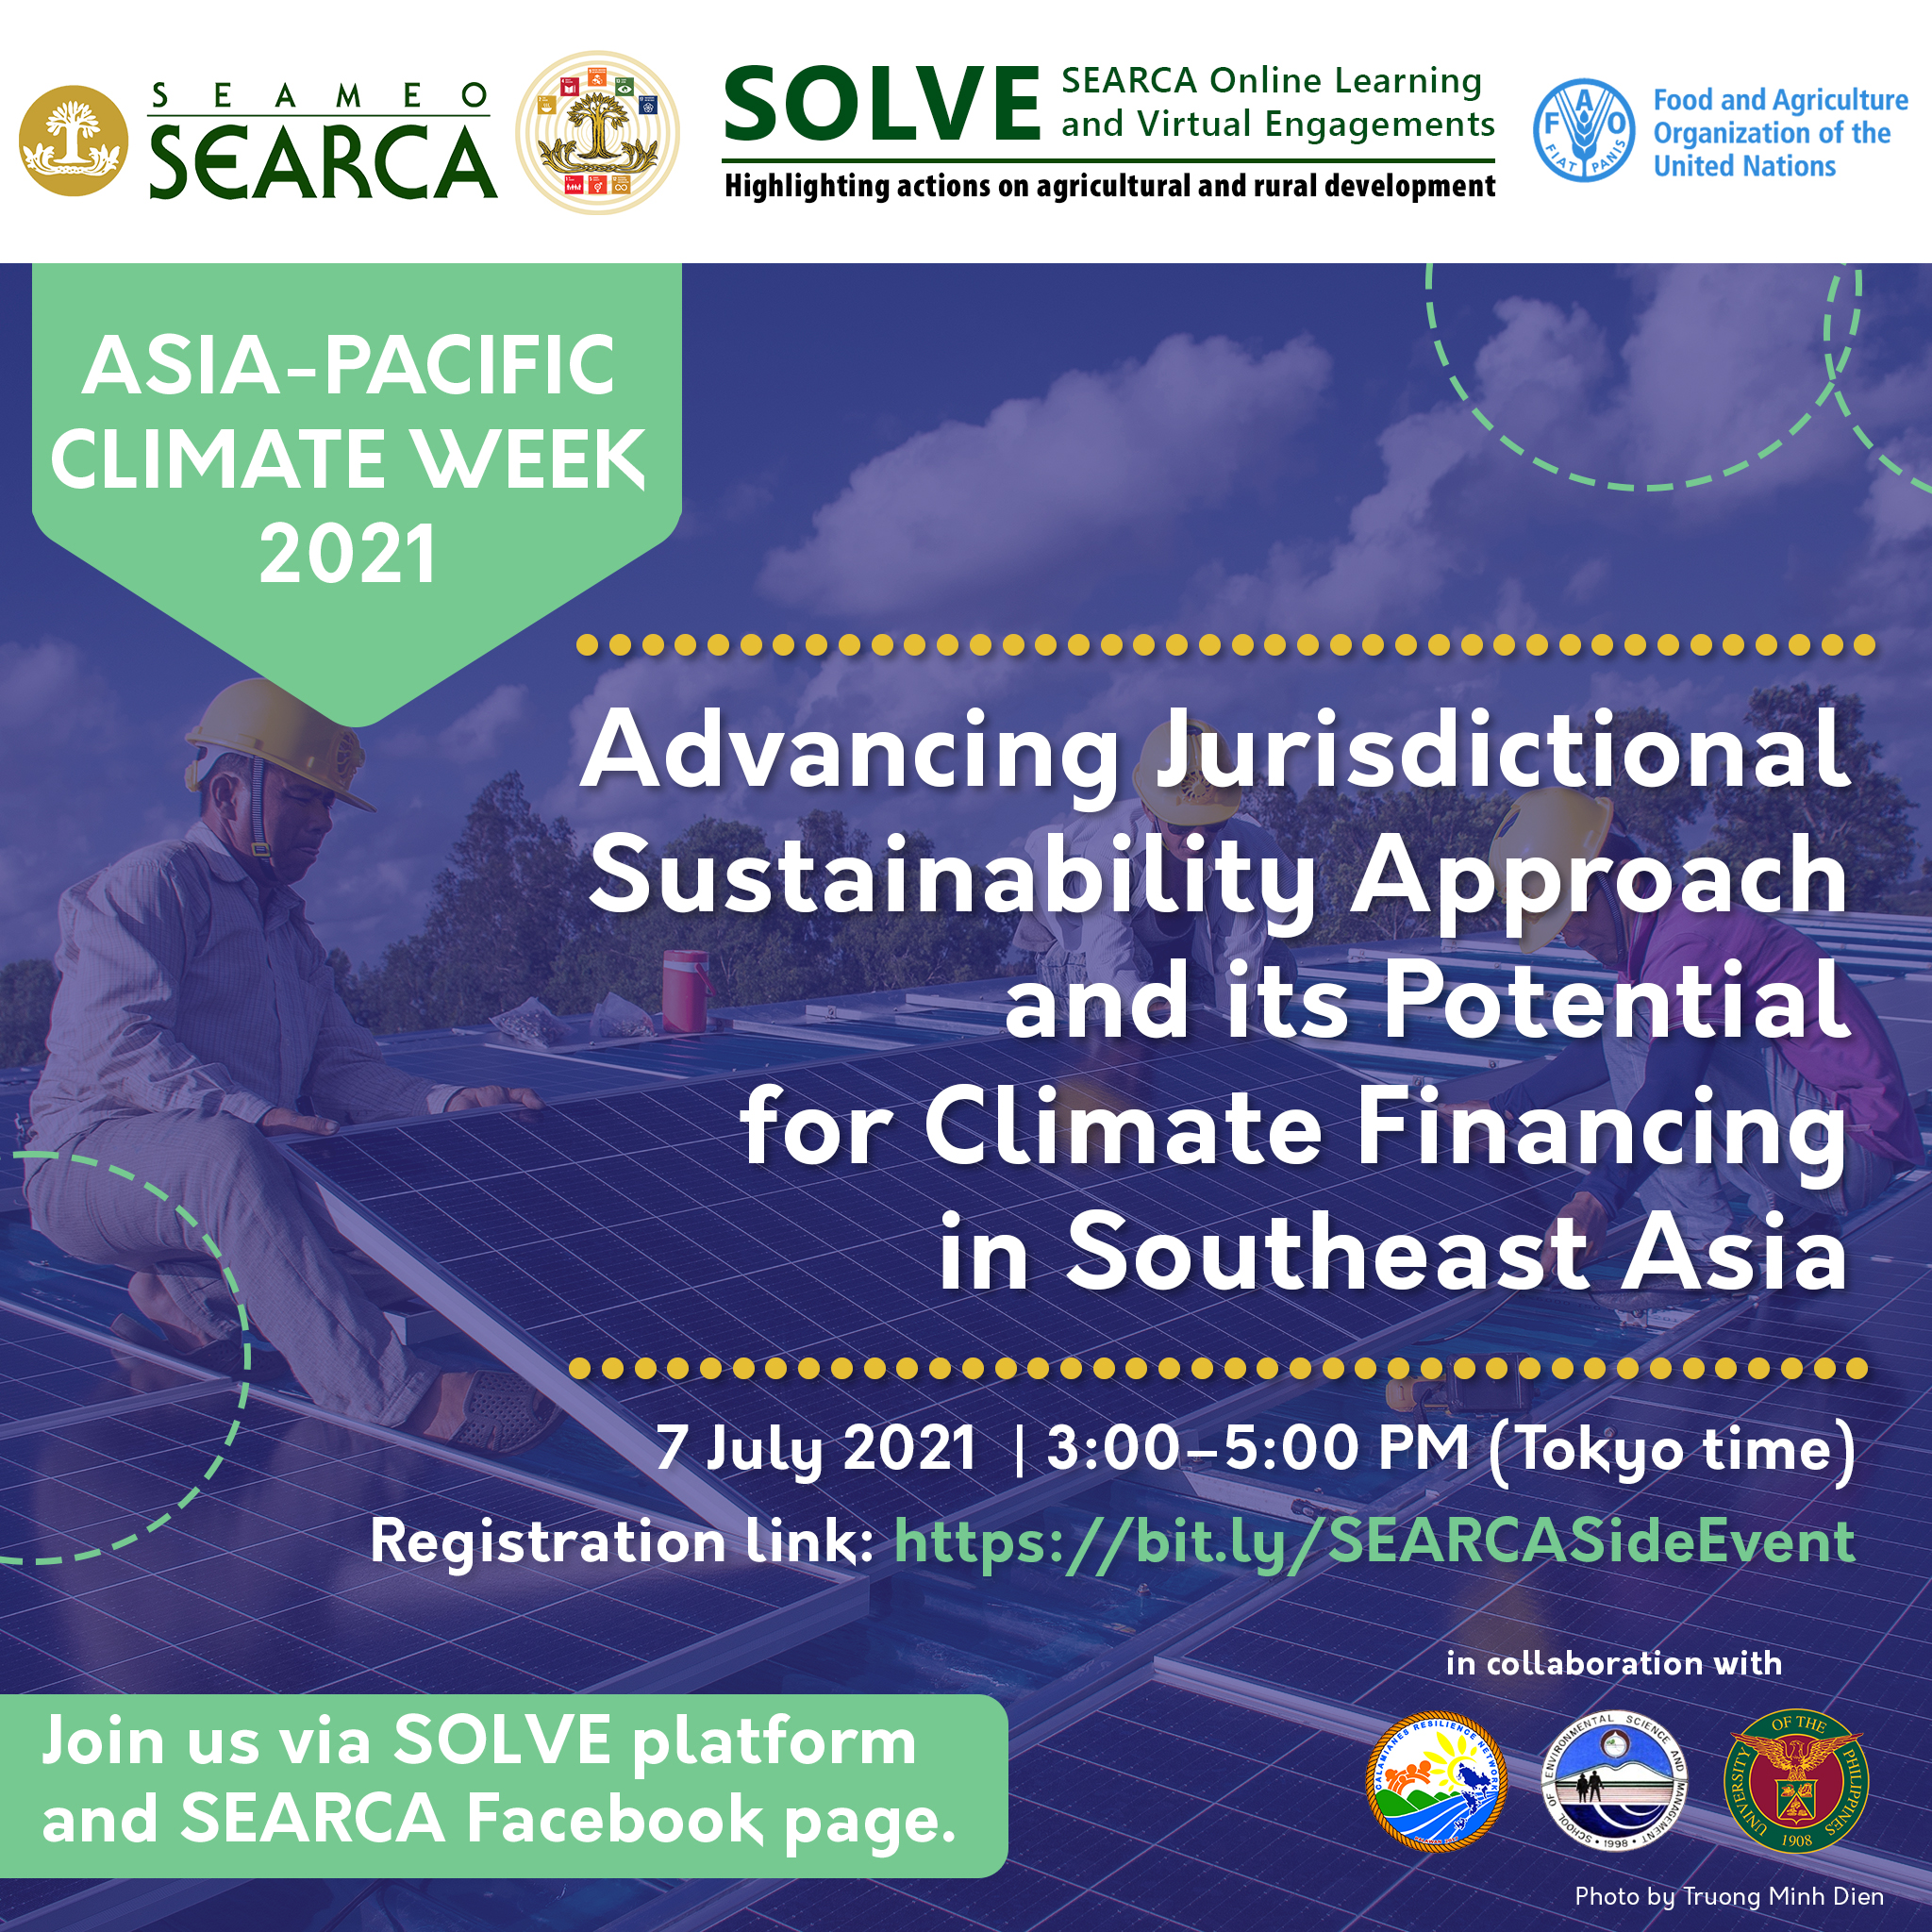 SEARCA Invites Everyone for the Asia-Pacific Climate Week Celebration